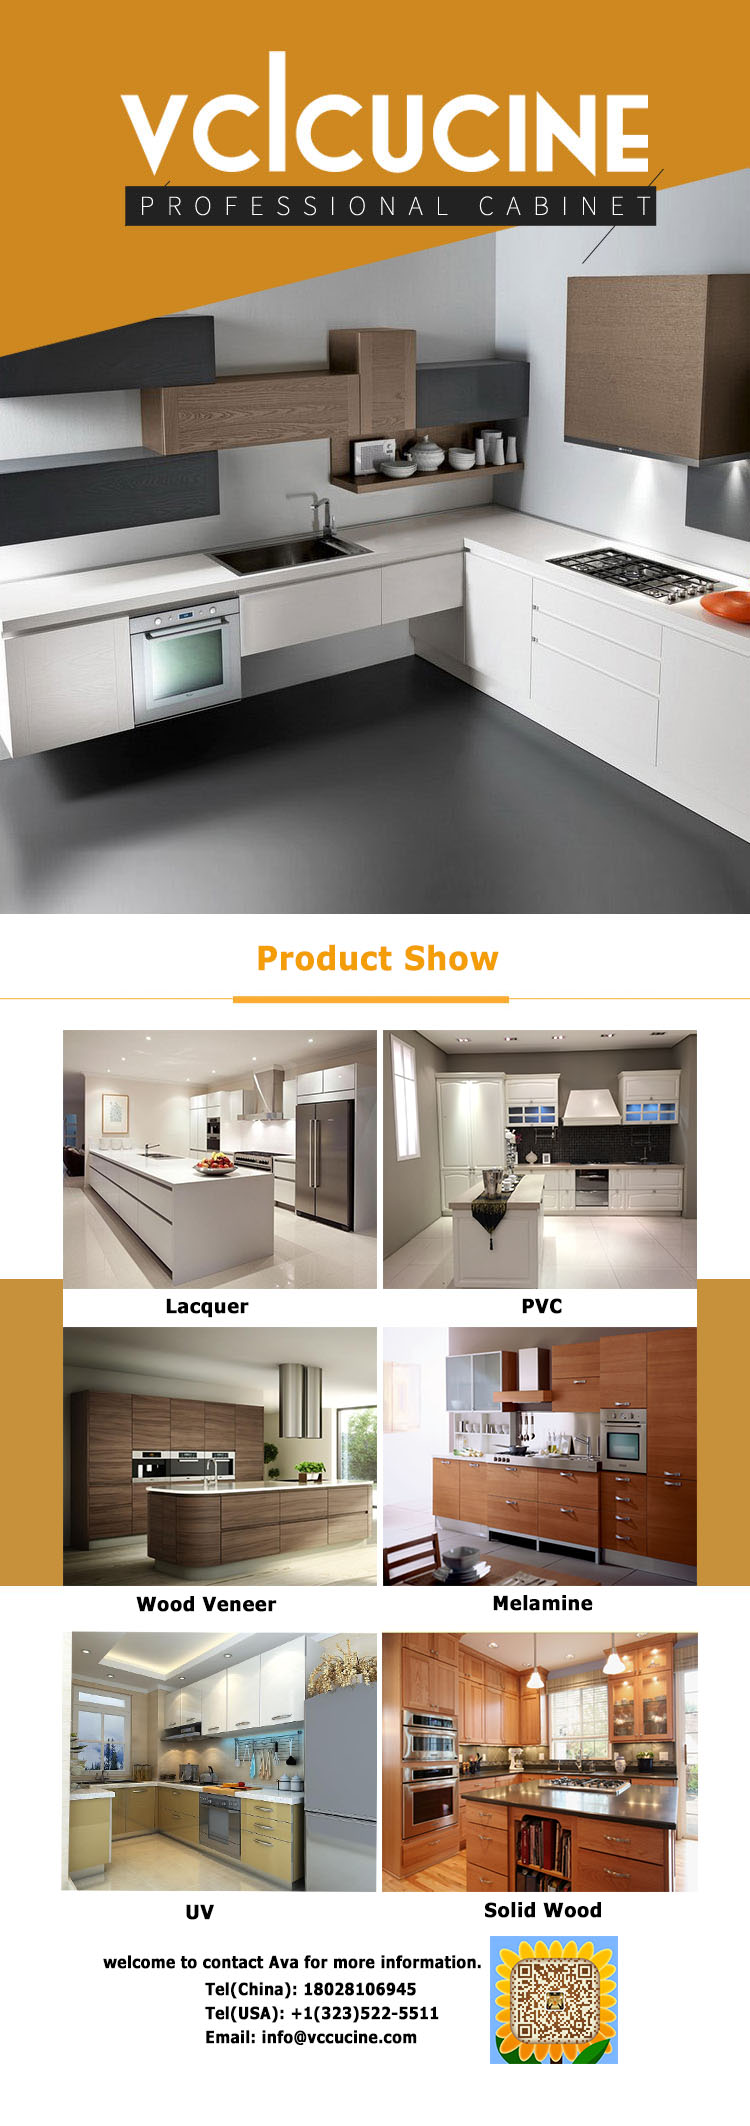 American project customized modern kitchen cabinets from foshan furniture factory factory